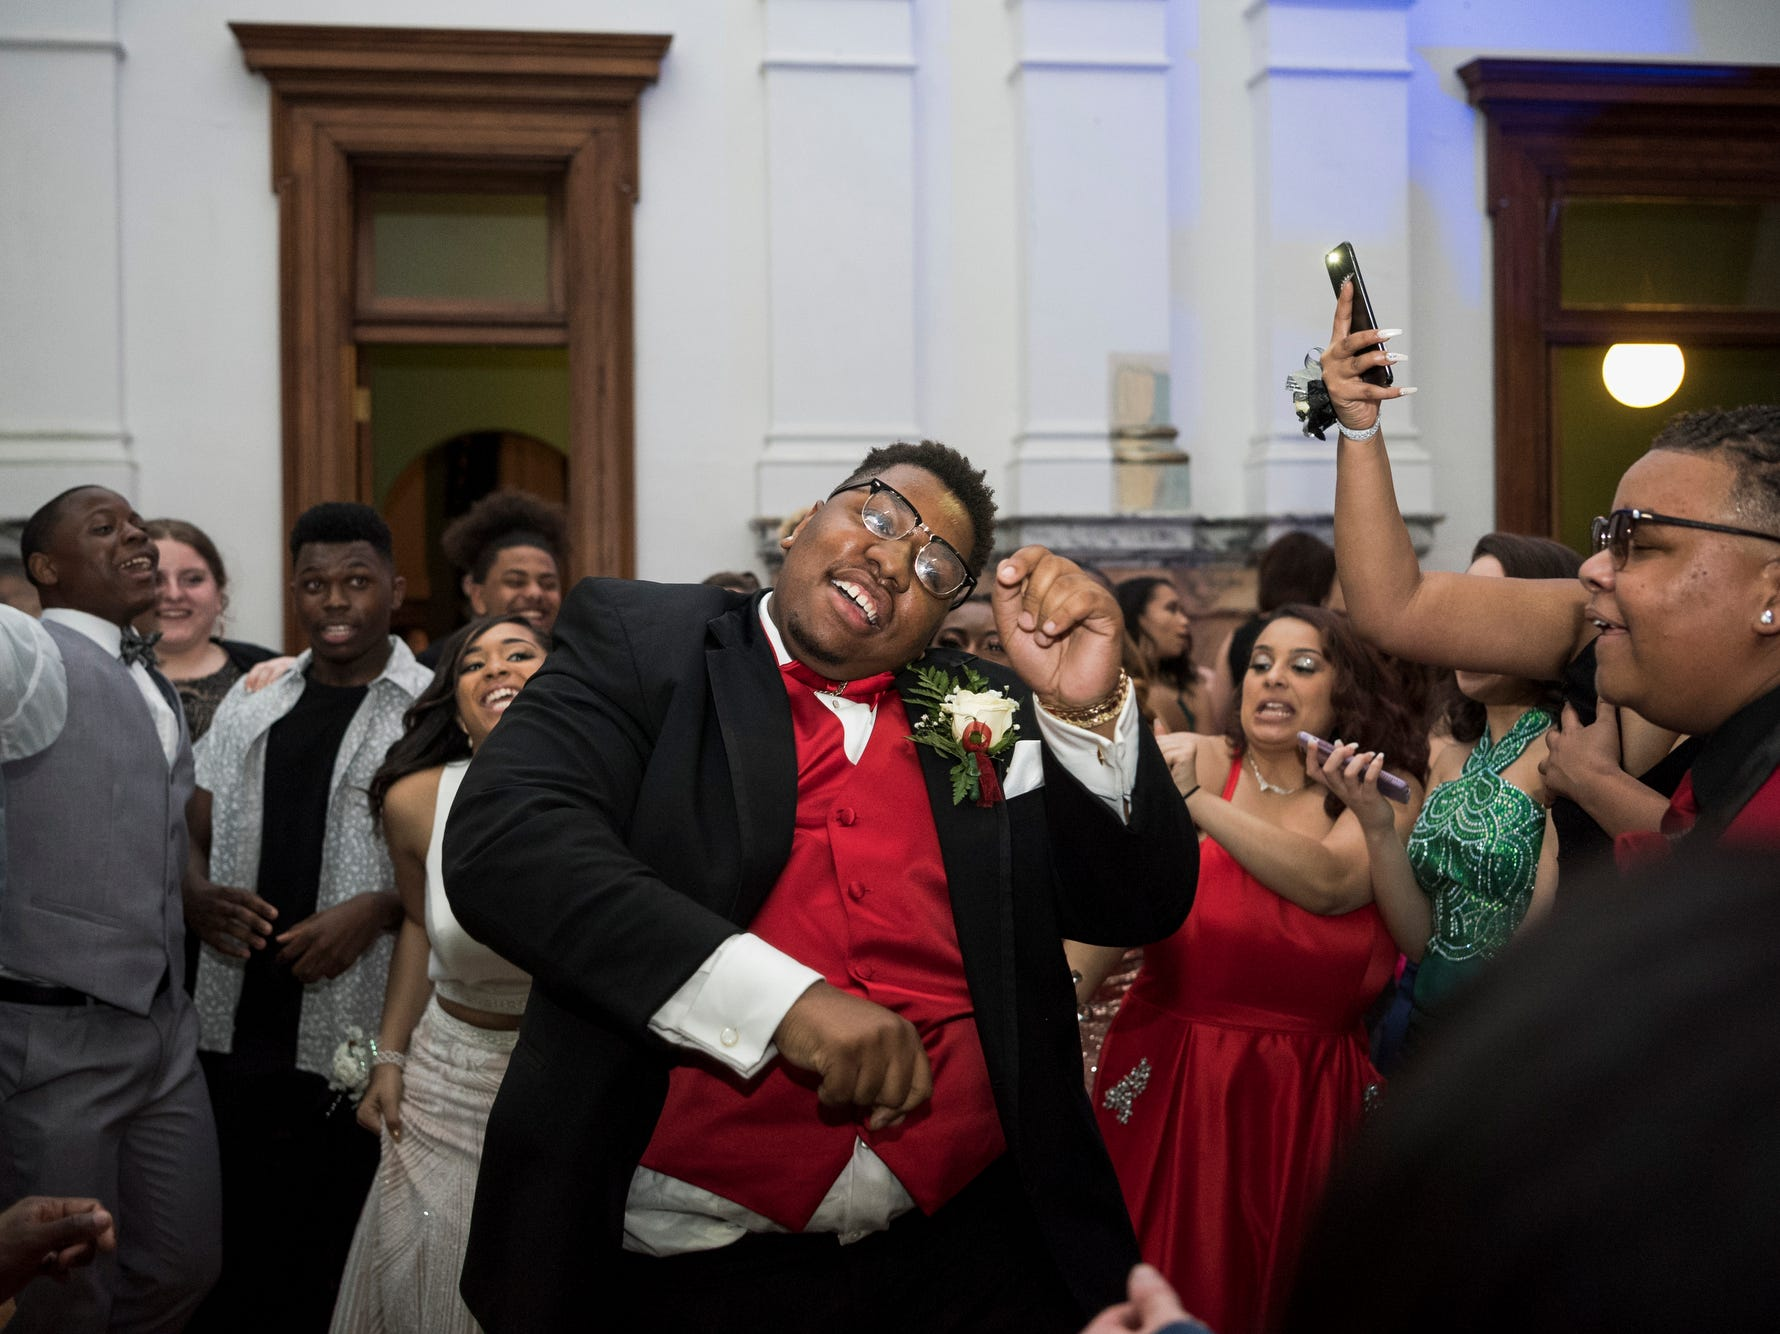 Bosse High School student Dalton Crowell dances as music thumps and the floor shakes during prom at the Old Vanderburgh County Courthouse in downtown Evansville, Ind., Saturday, April 6, 2019.